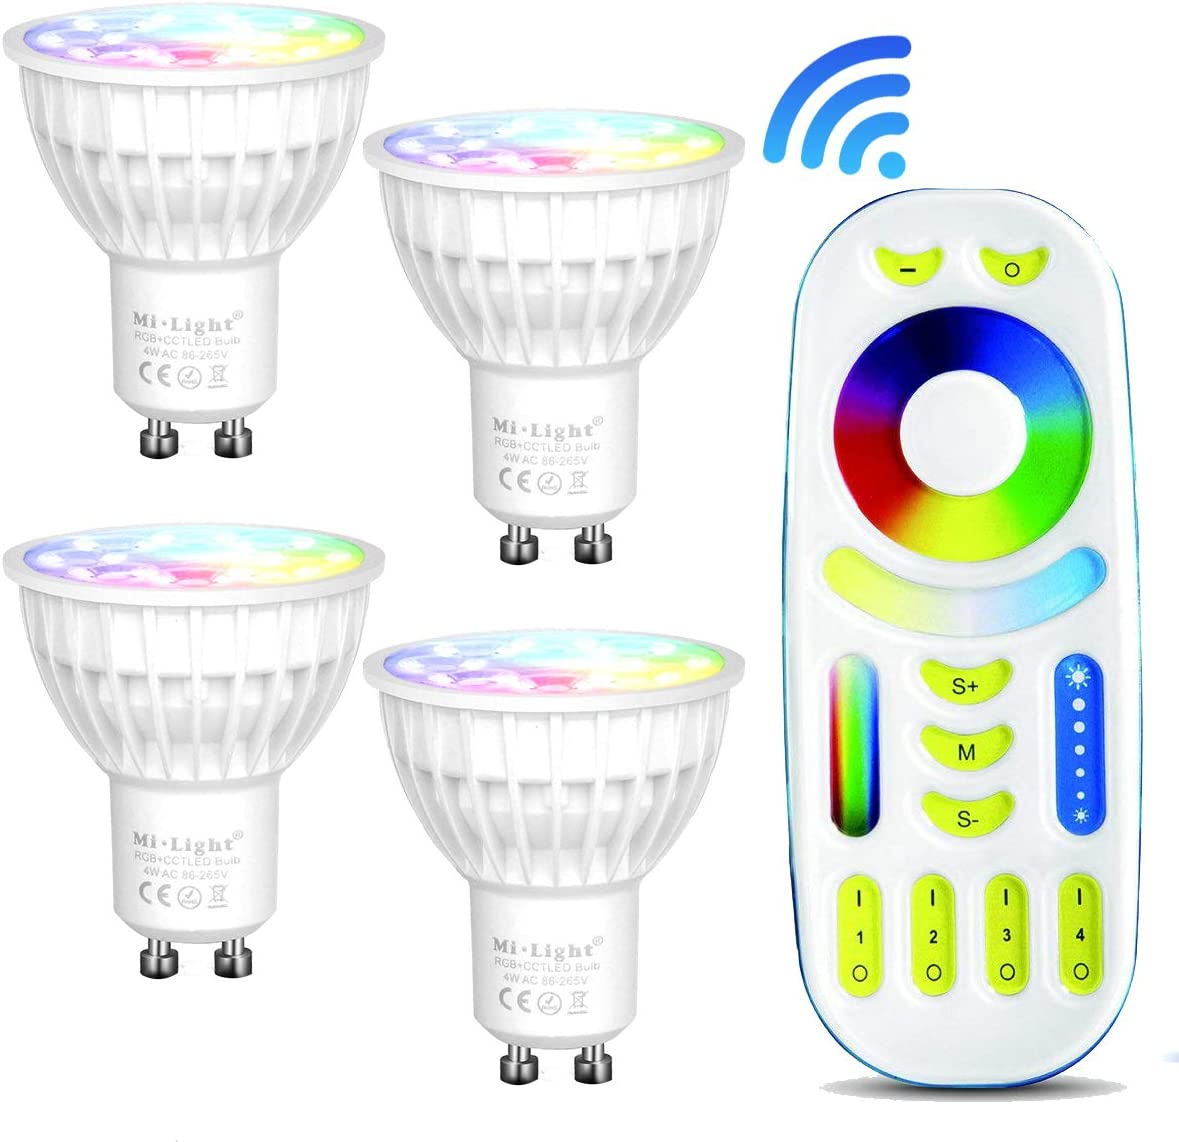 Need Controlled by Mi Light wifi ibox// Remote 4 Pack Mi-light Dimmable GU10 4W Led Bulb RGB+CCT LED Spotlight Smart Led Lamp with Remote